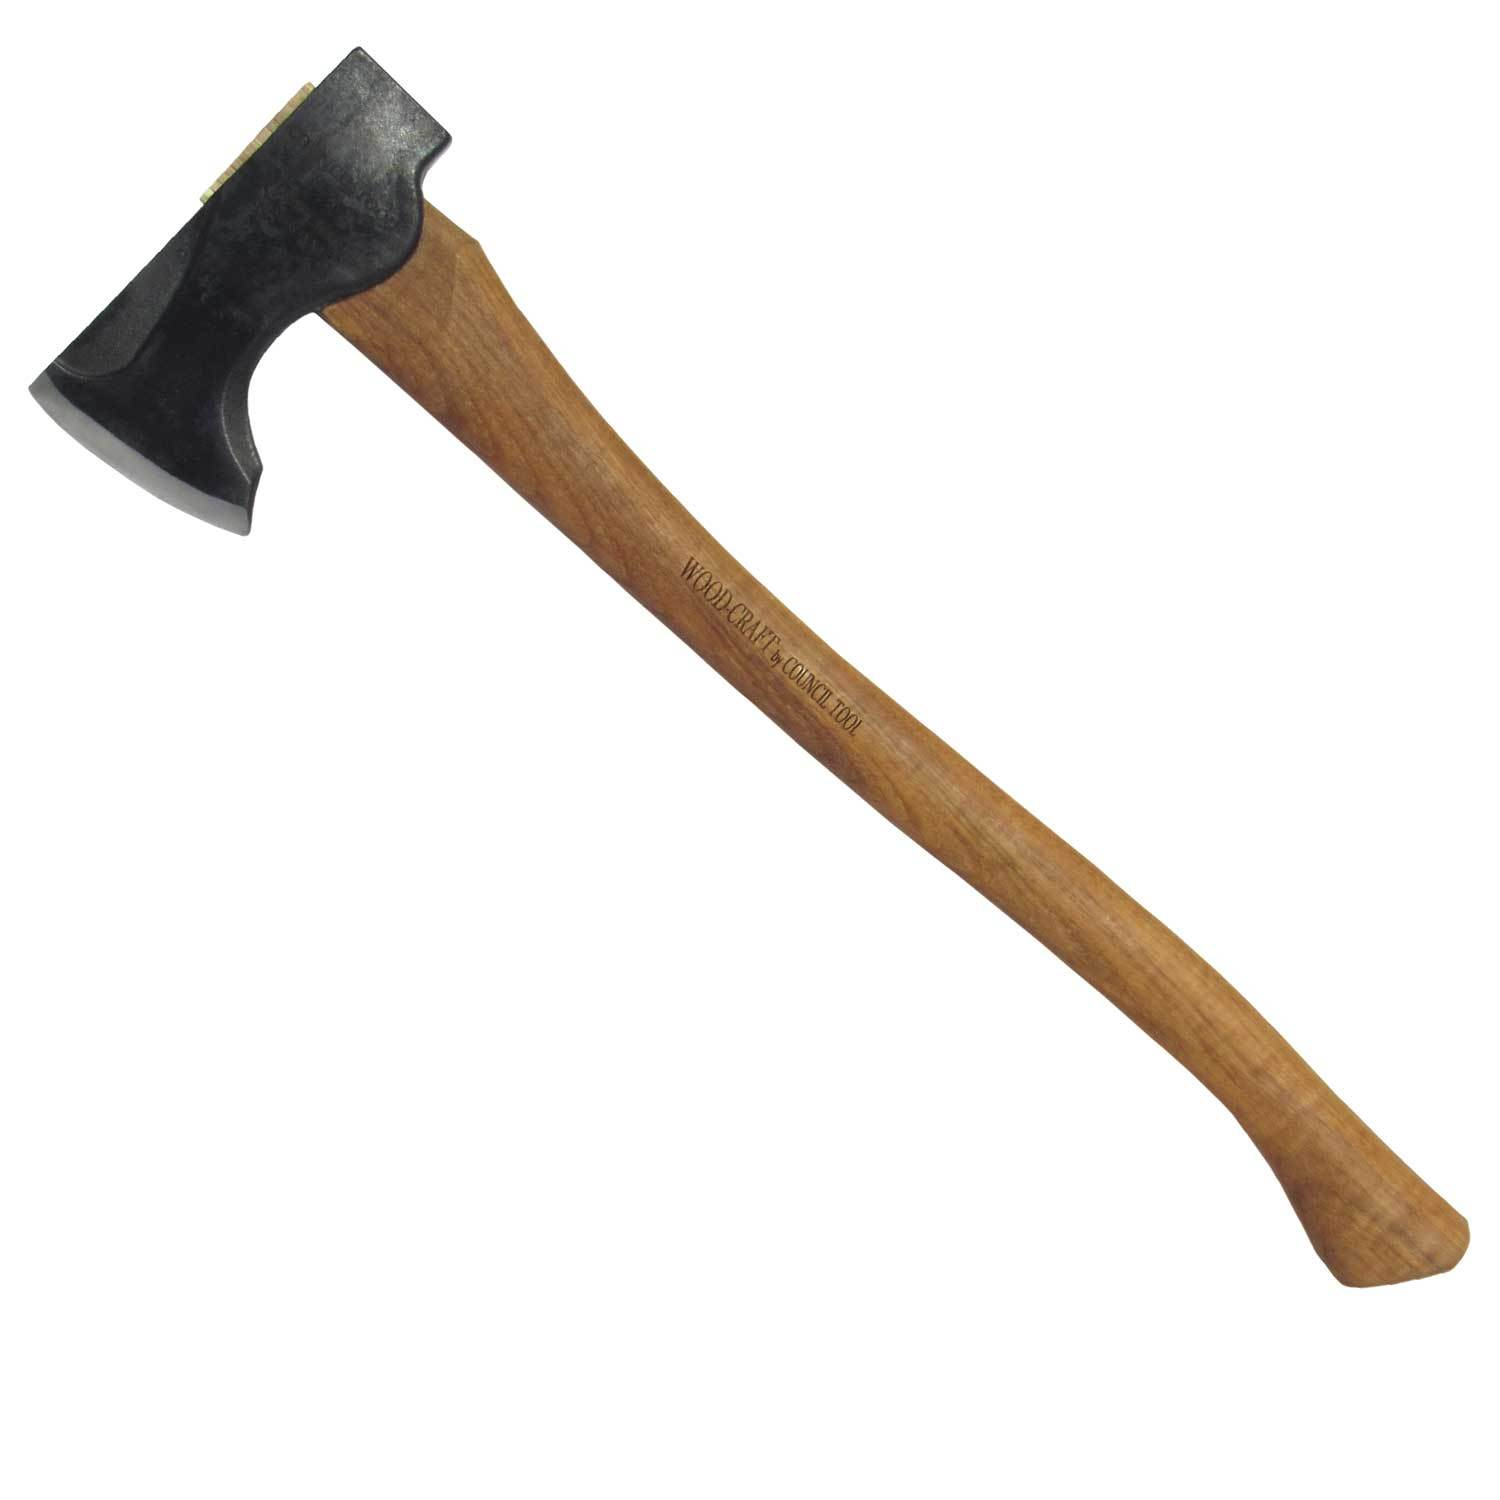 Woodcraft Pack Axe 24 Inch By Council Tool Boundary